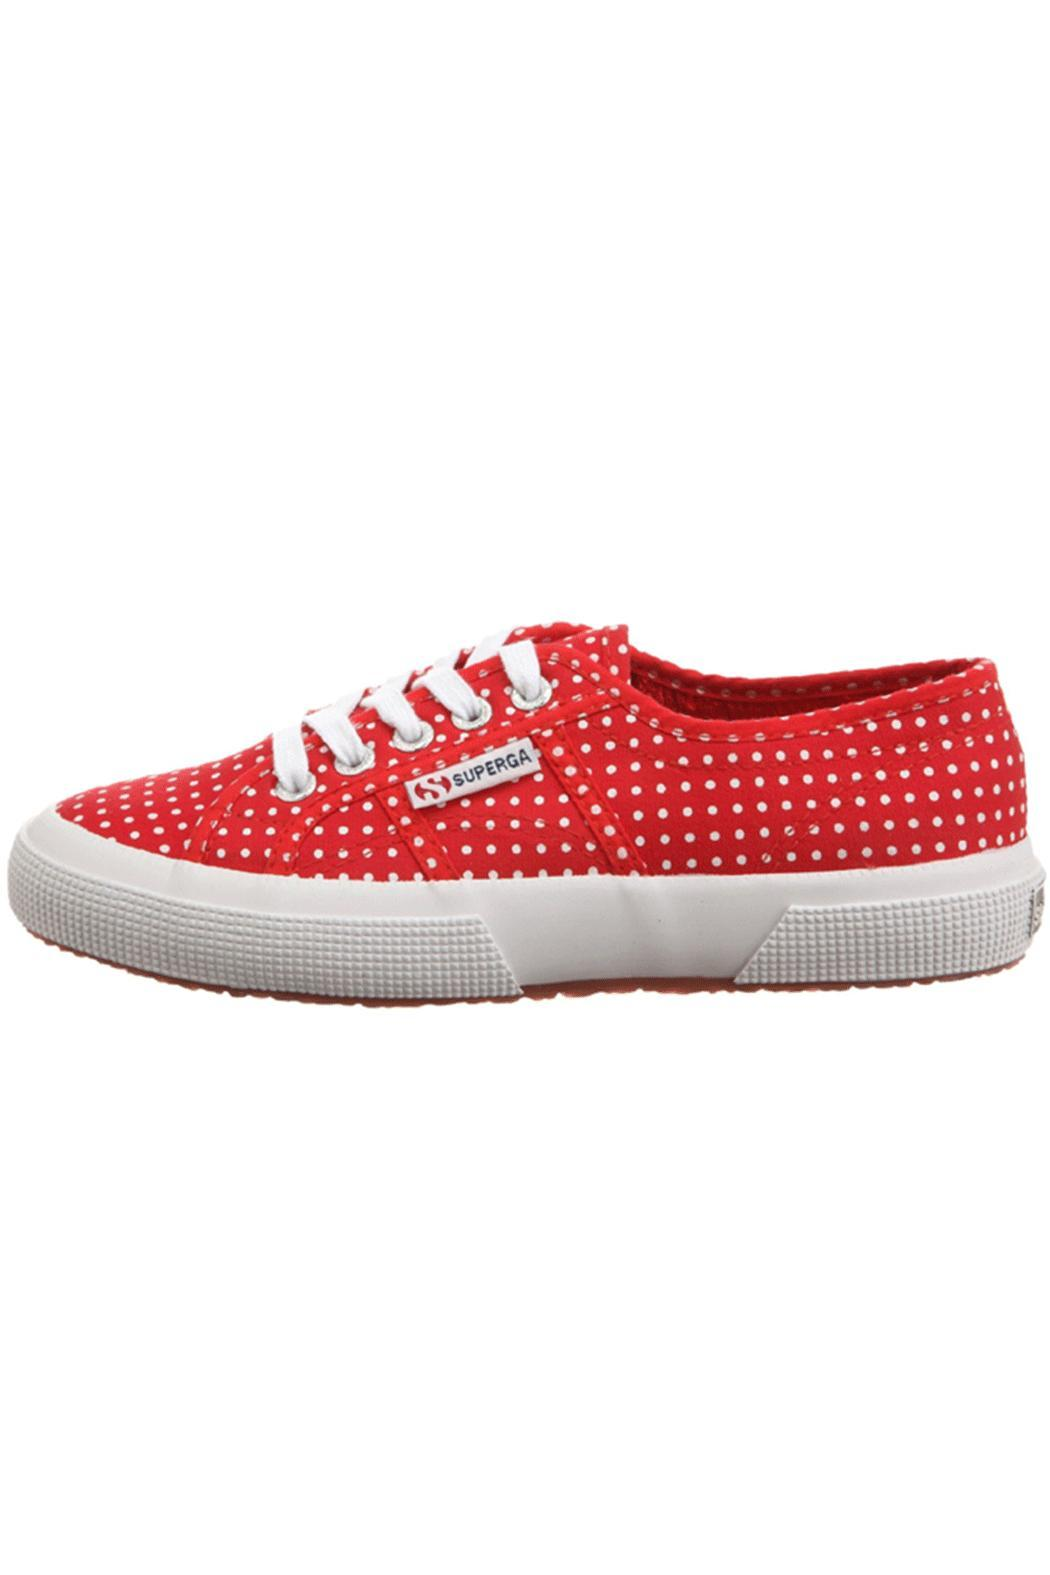 Superga Red Pois Sneakers - Main Image